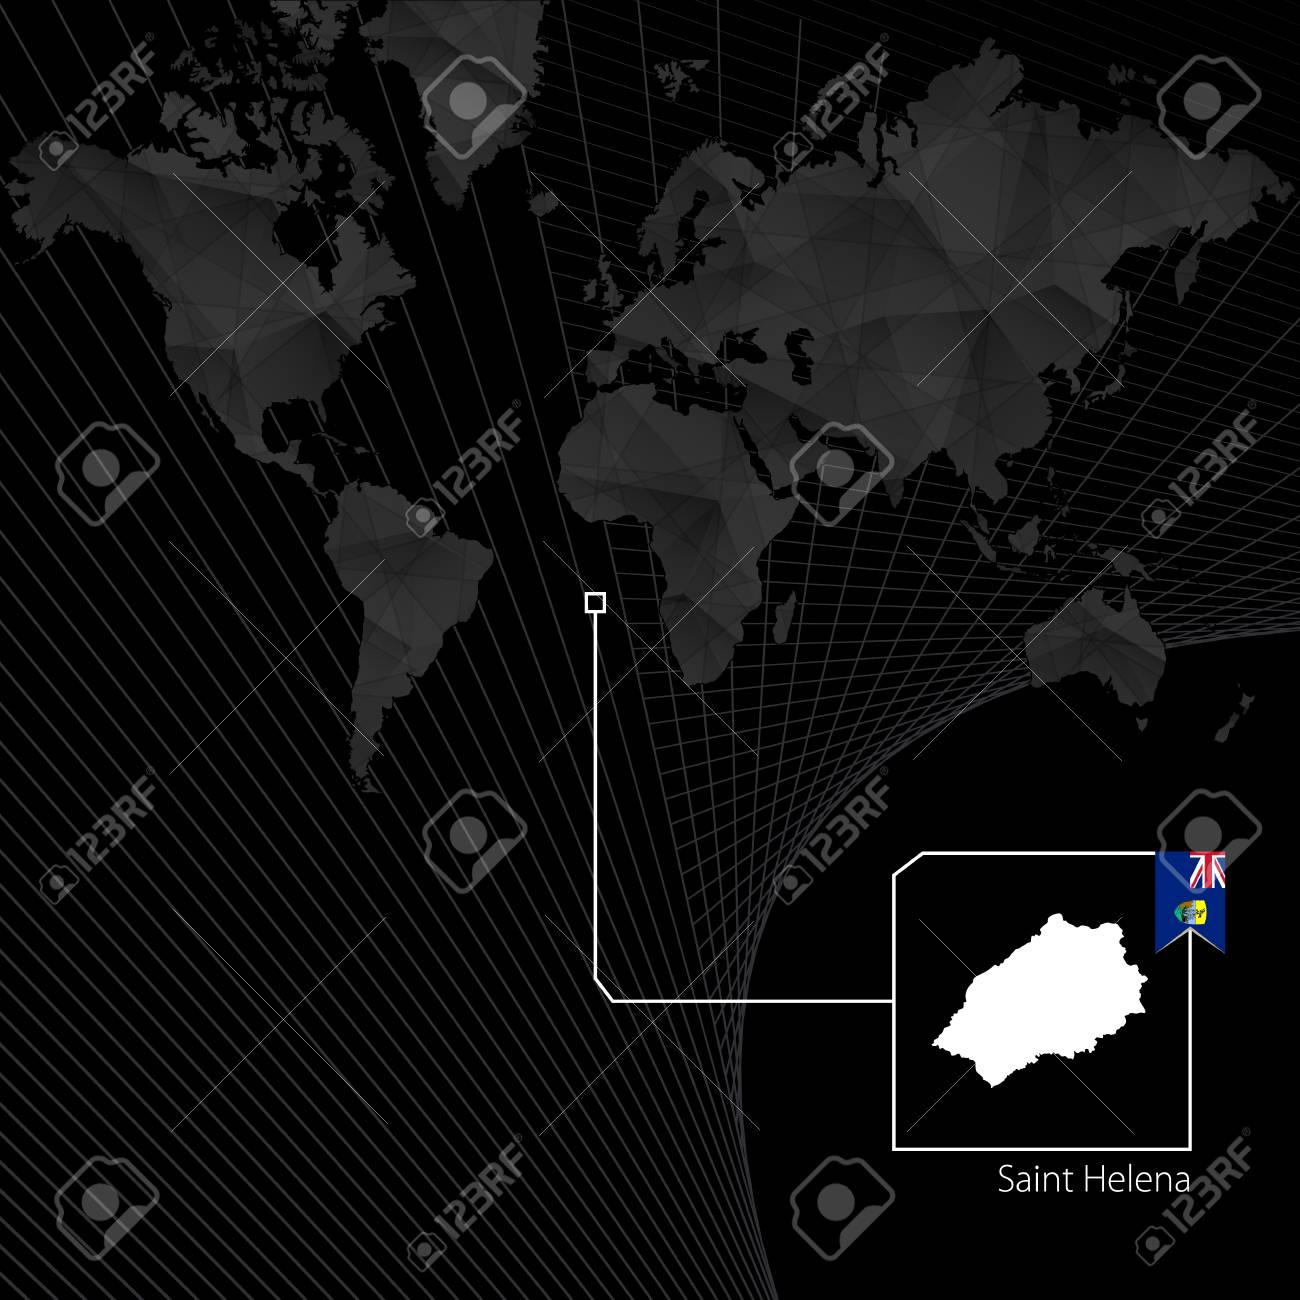 St Helena On World Map.Saint Helena On Black World Map Map And Flag Of Saint Helena